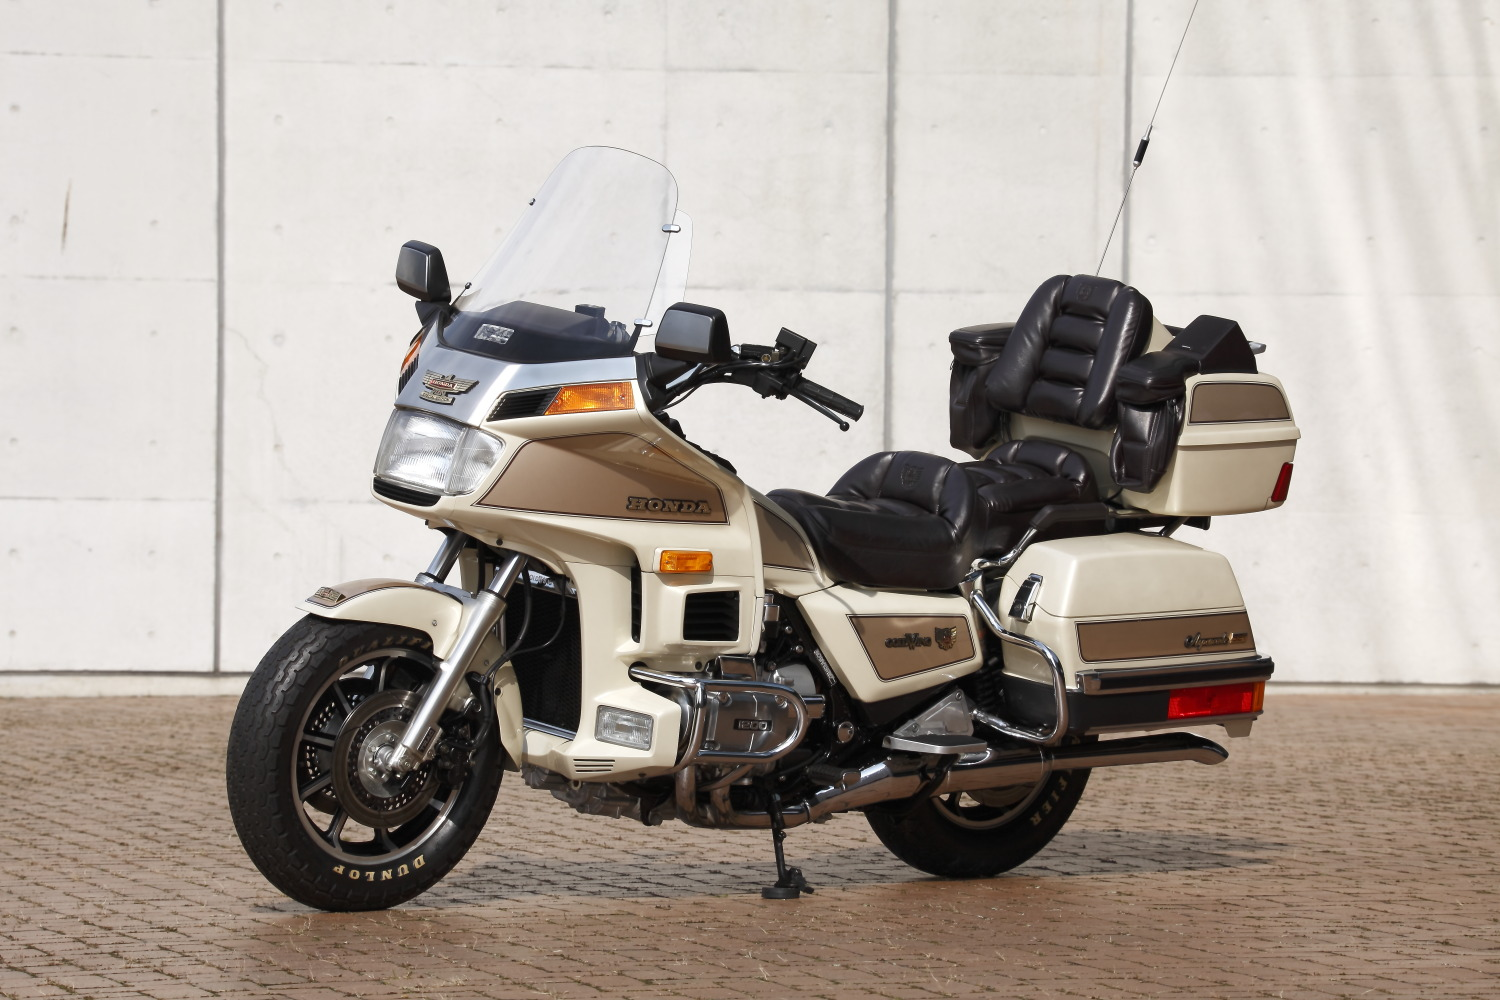 GL1200 honda Gold Wing